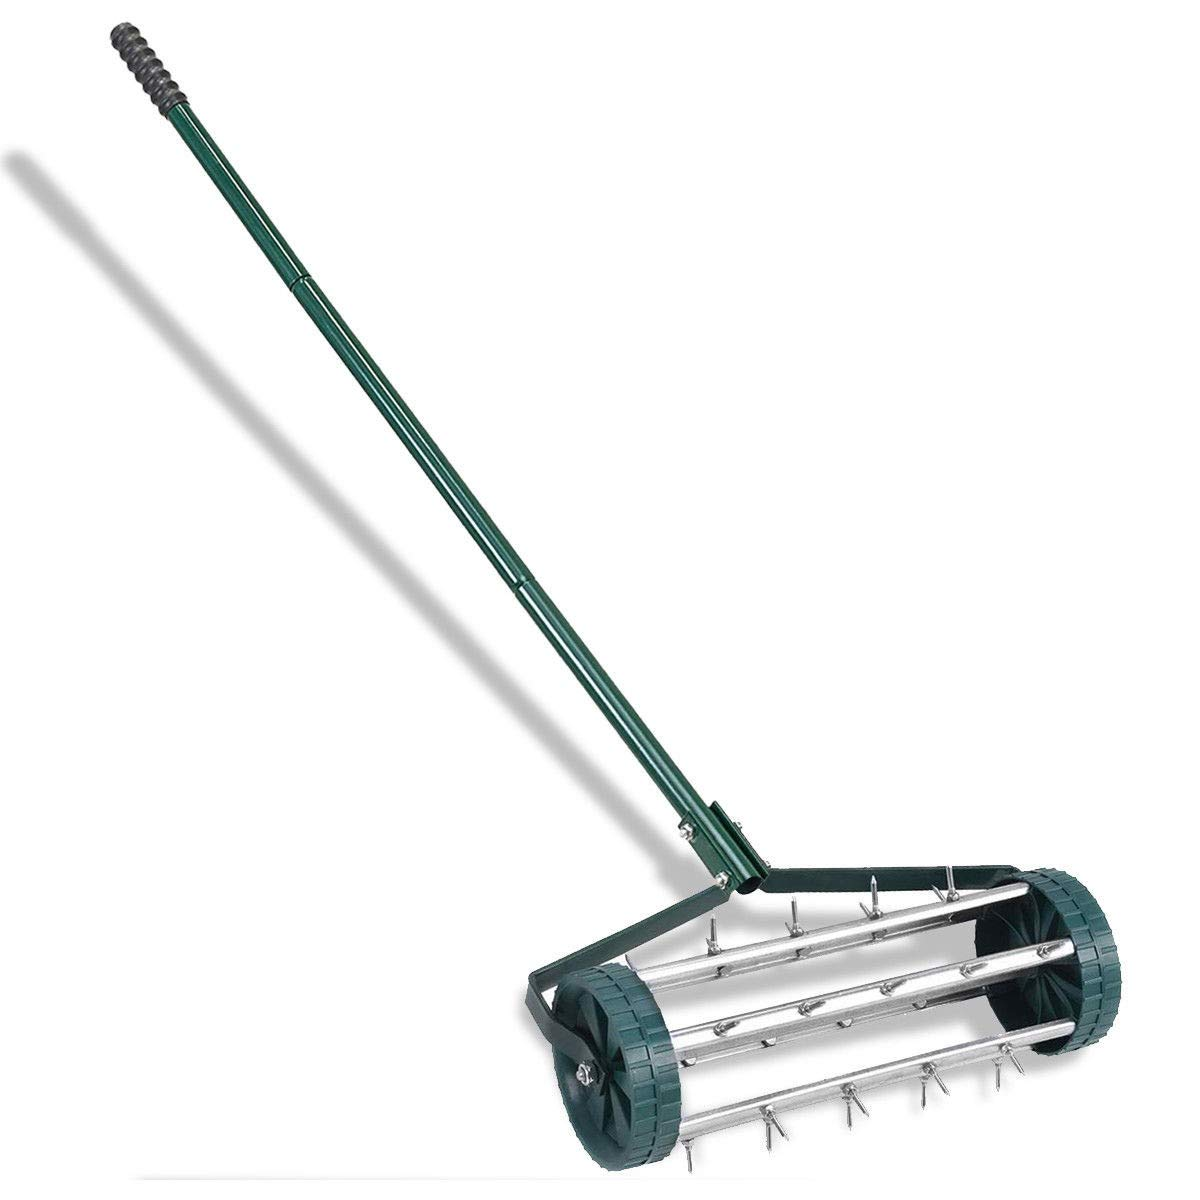 LHONE Lawn Aerator Heavy Duty Easy Rolling Garden Lawn Aerator Roller Home Grass Steel Handle Green by LHONE